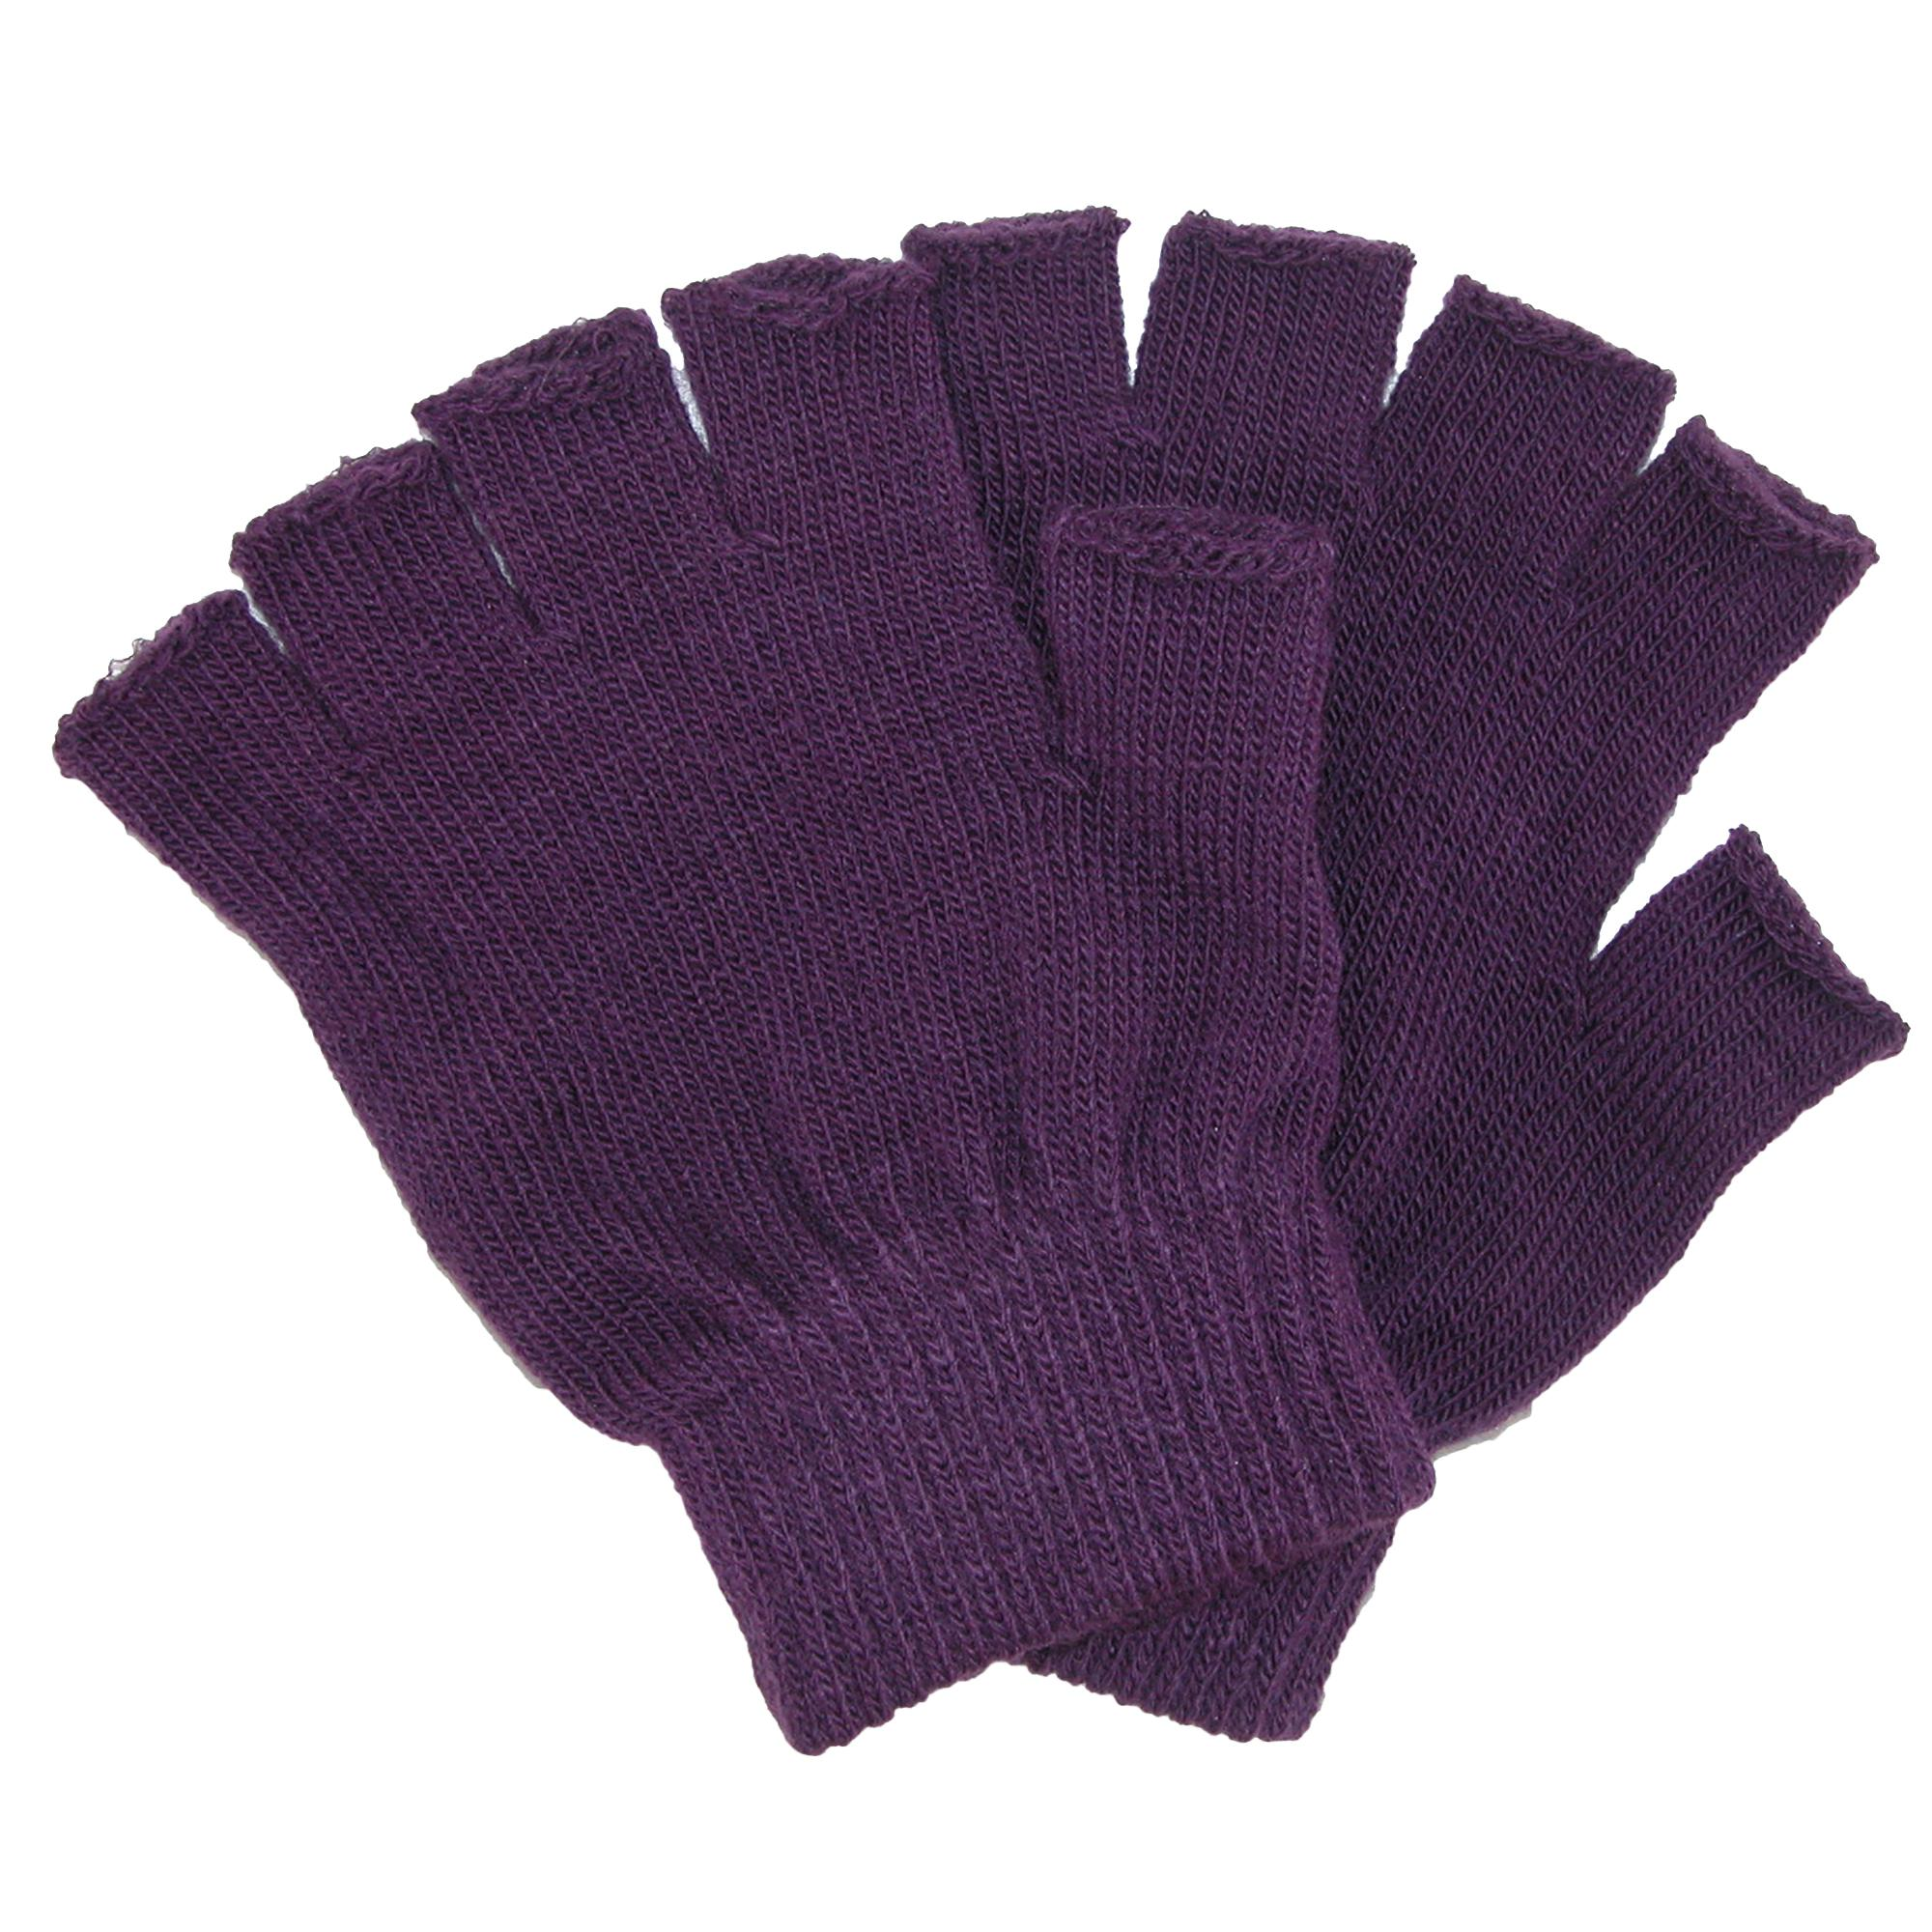 CTM Kid's Stretch Fingerless Gloves